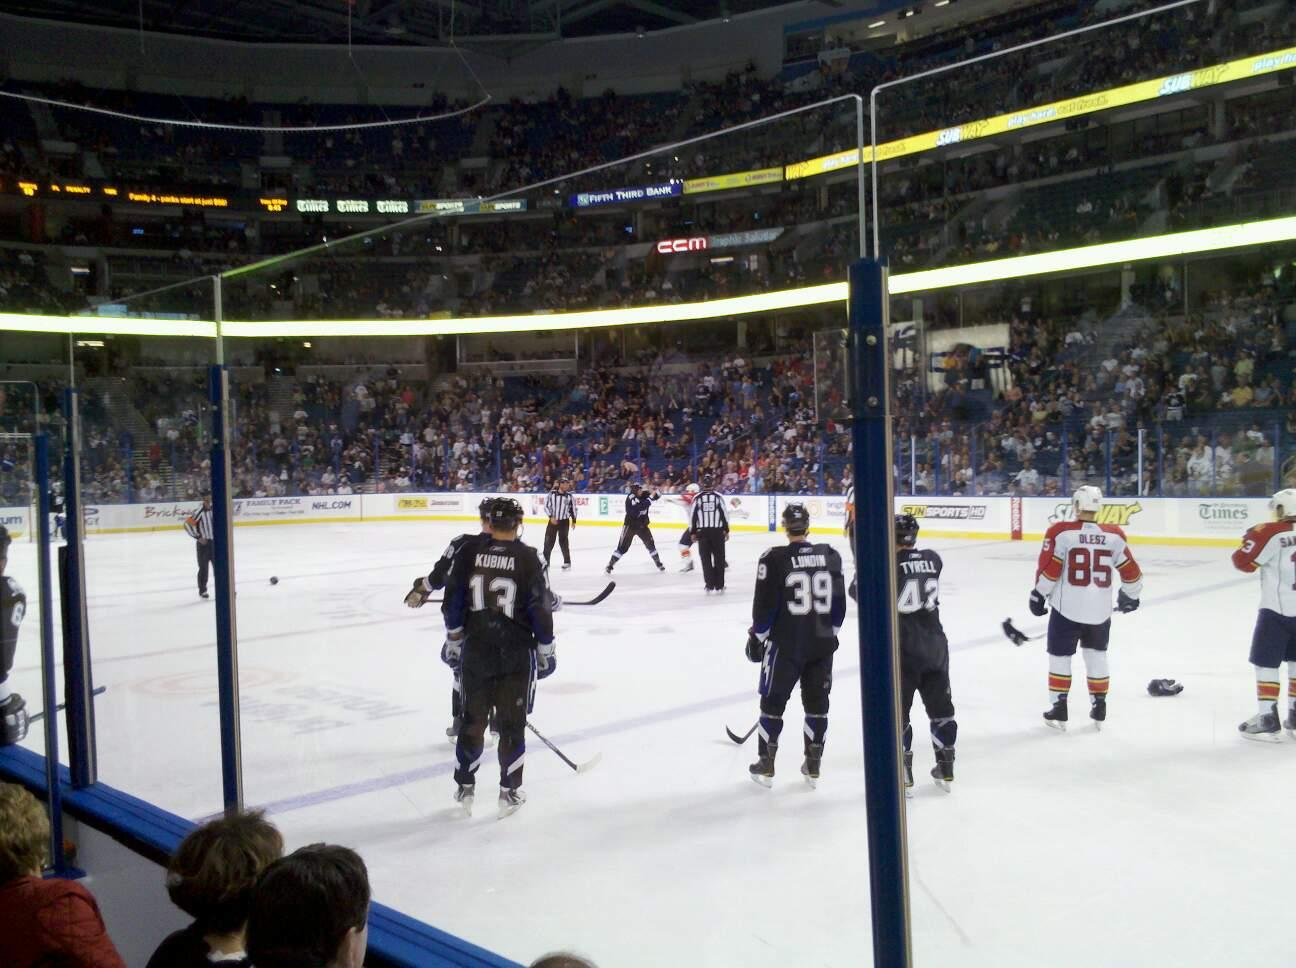 Amalie Arena Section 106 Row d Seat 7